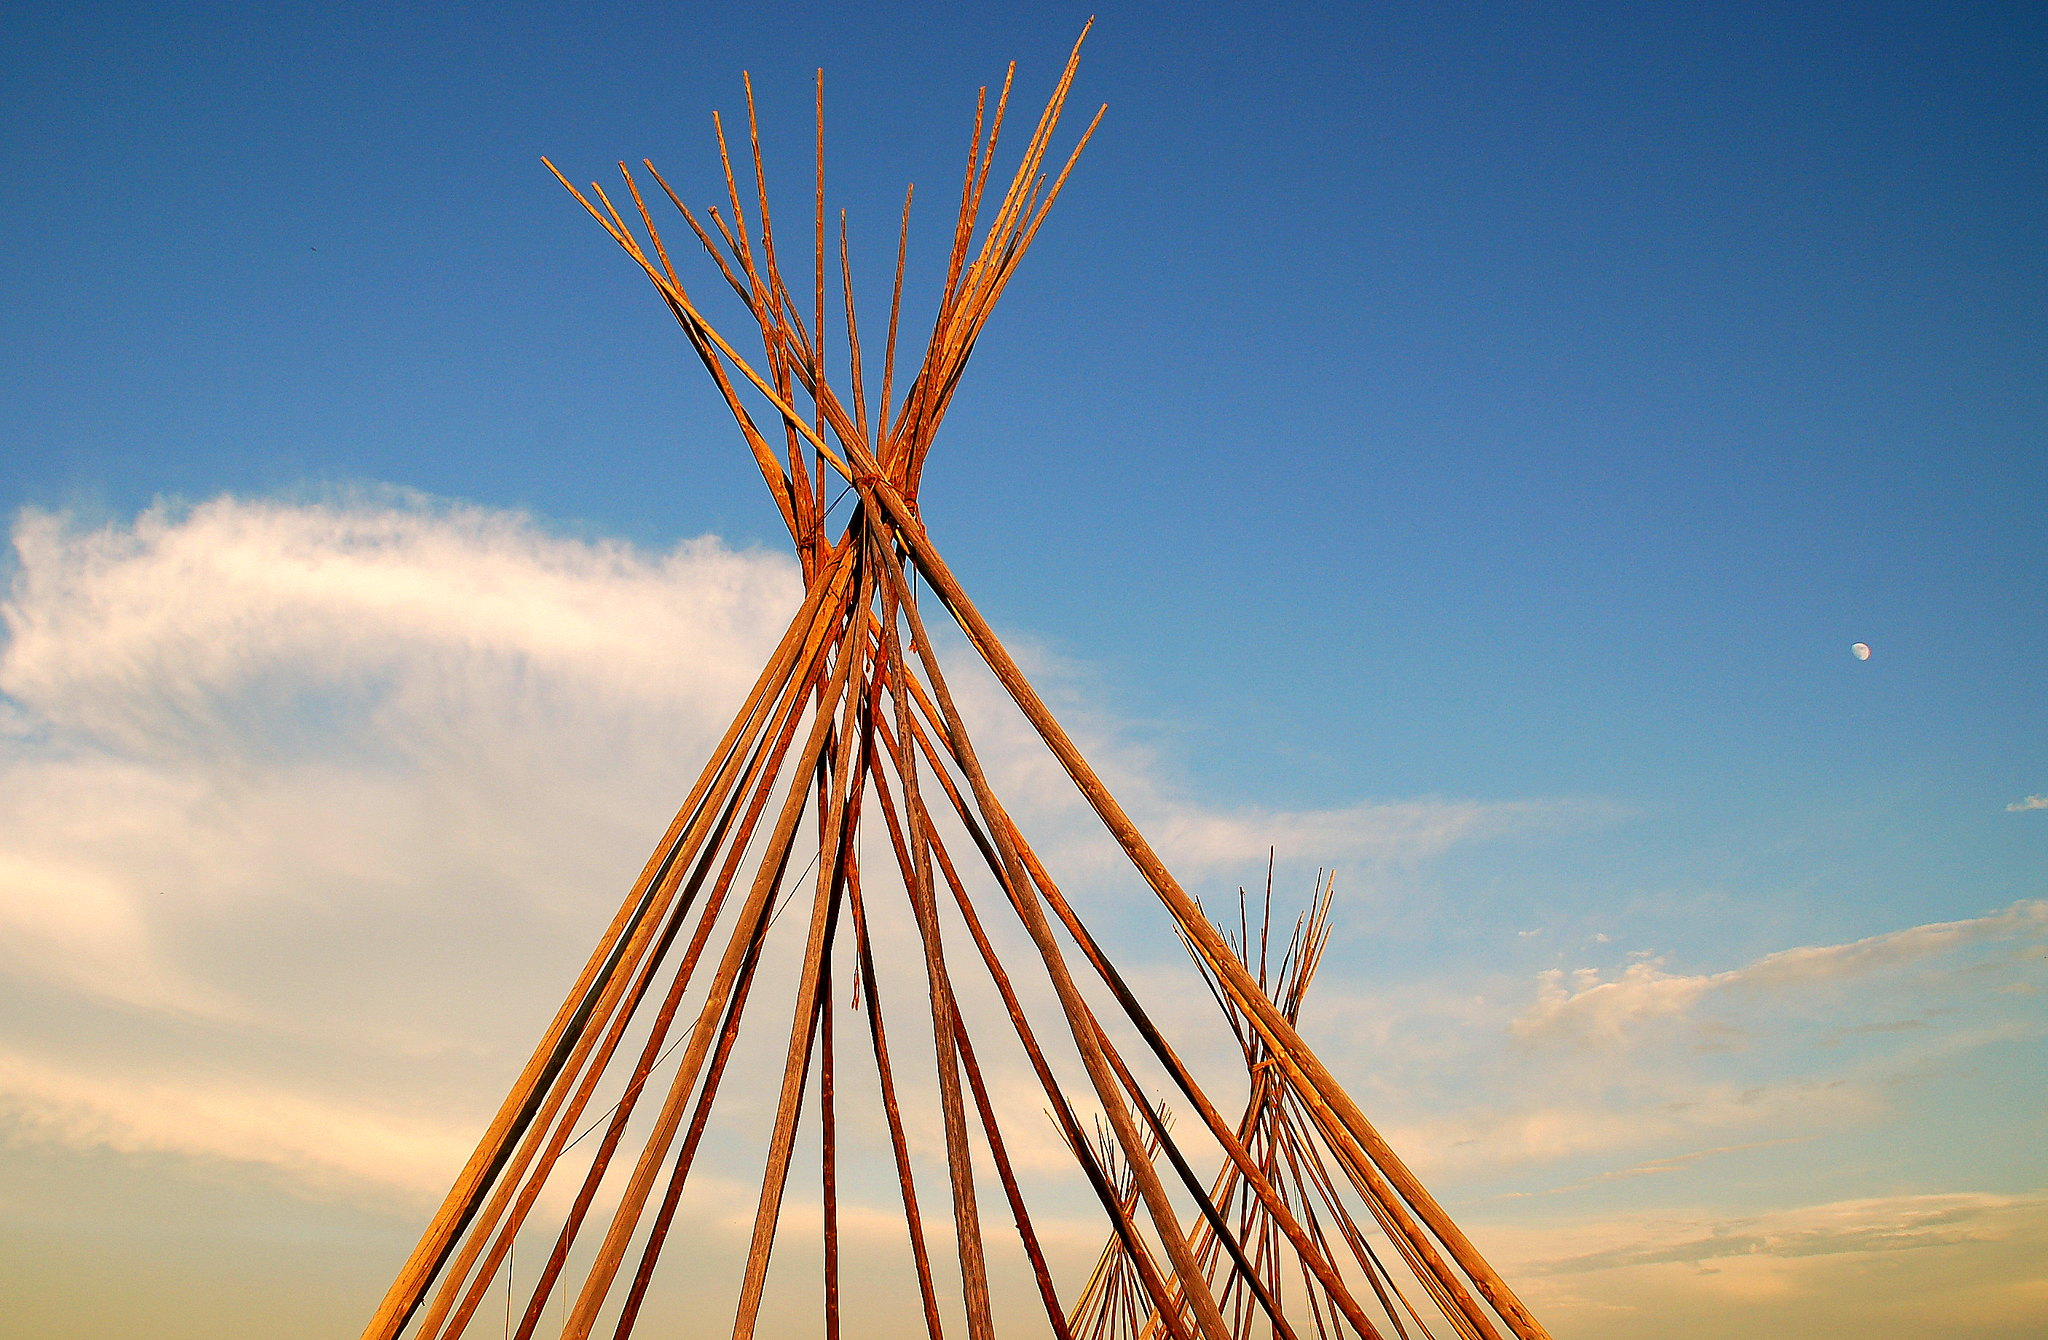 Bill establishes Oceti Sakowin schools in South Dakota